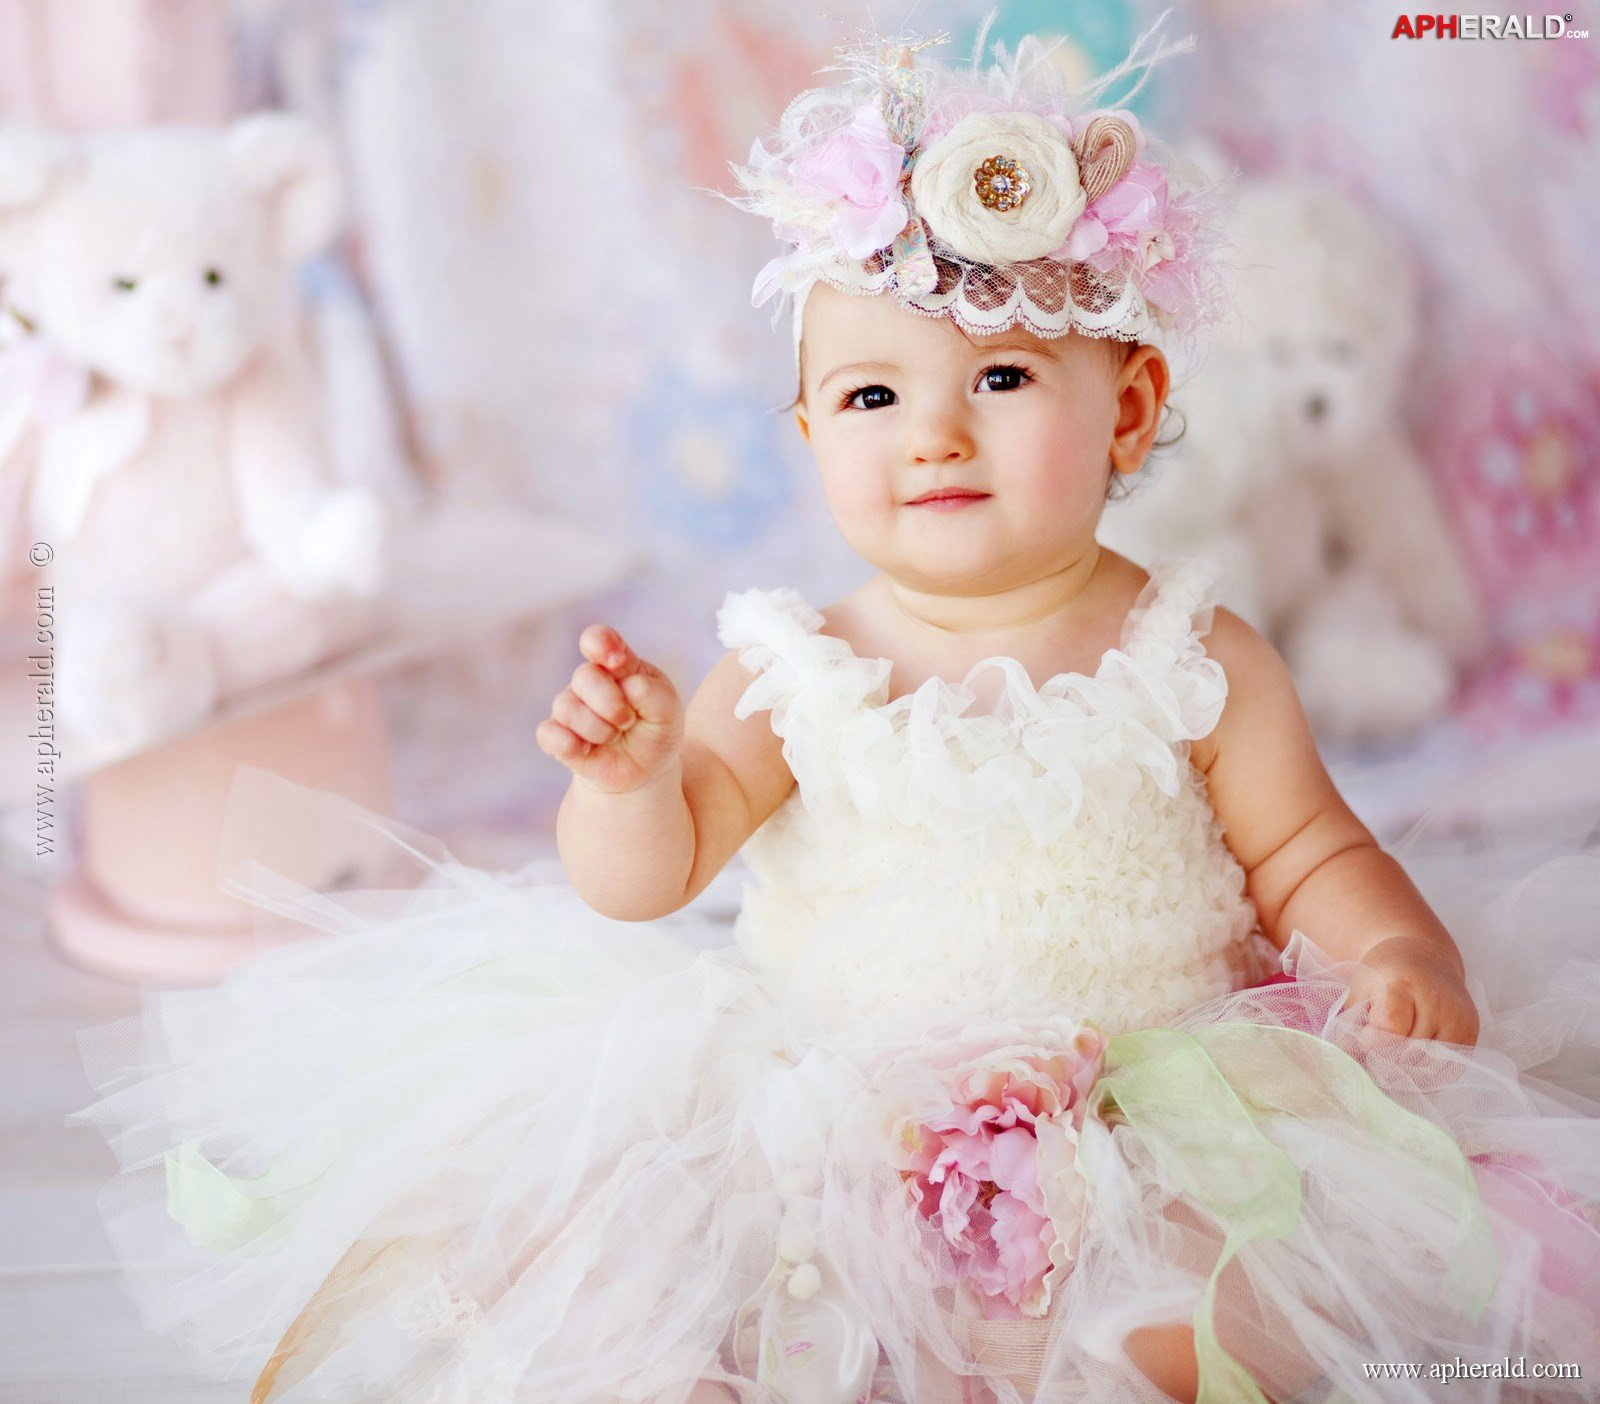 6f993f799 Baby Girl Cute Pics - HD Wallpapers Images